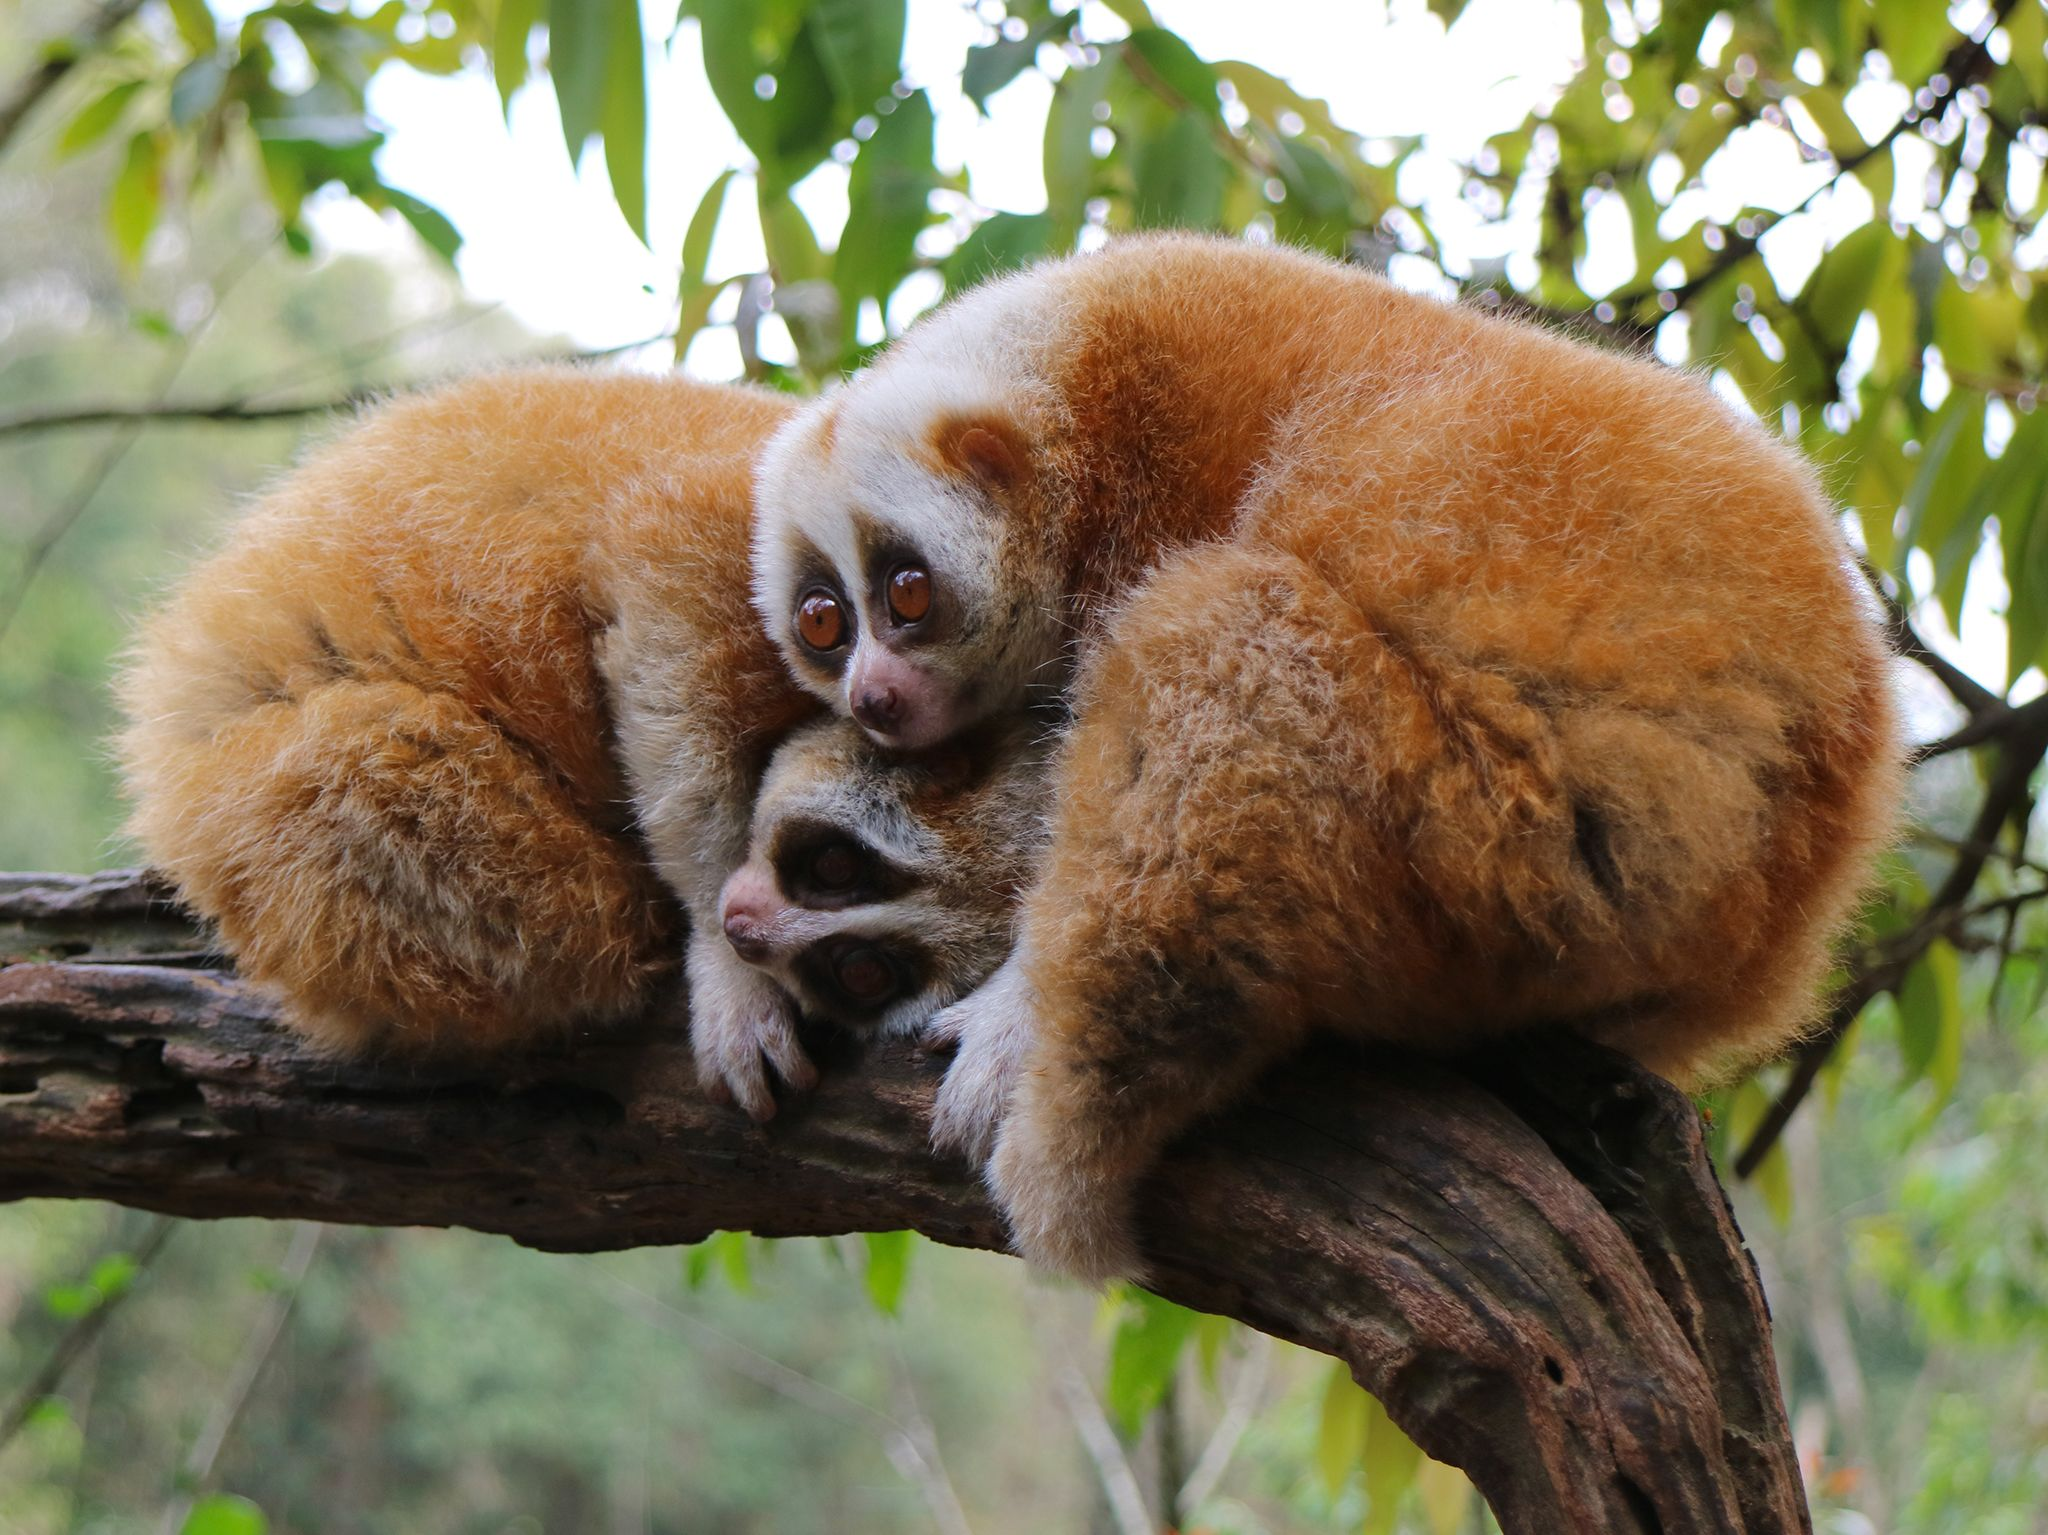 Pu'er Sun River National Park, Yunnan:  2 Slow lorises waking up at dusk.  Lorises are the only... [Photo of the day - ژوئن 2019]